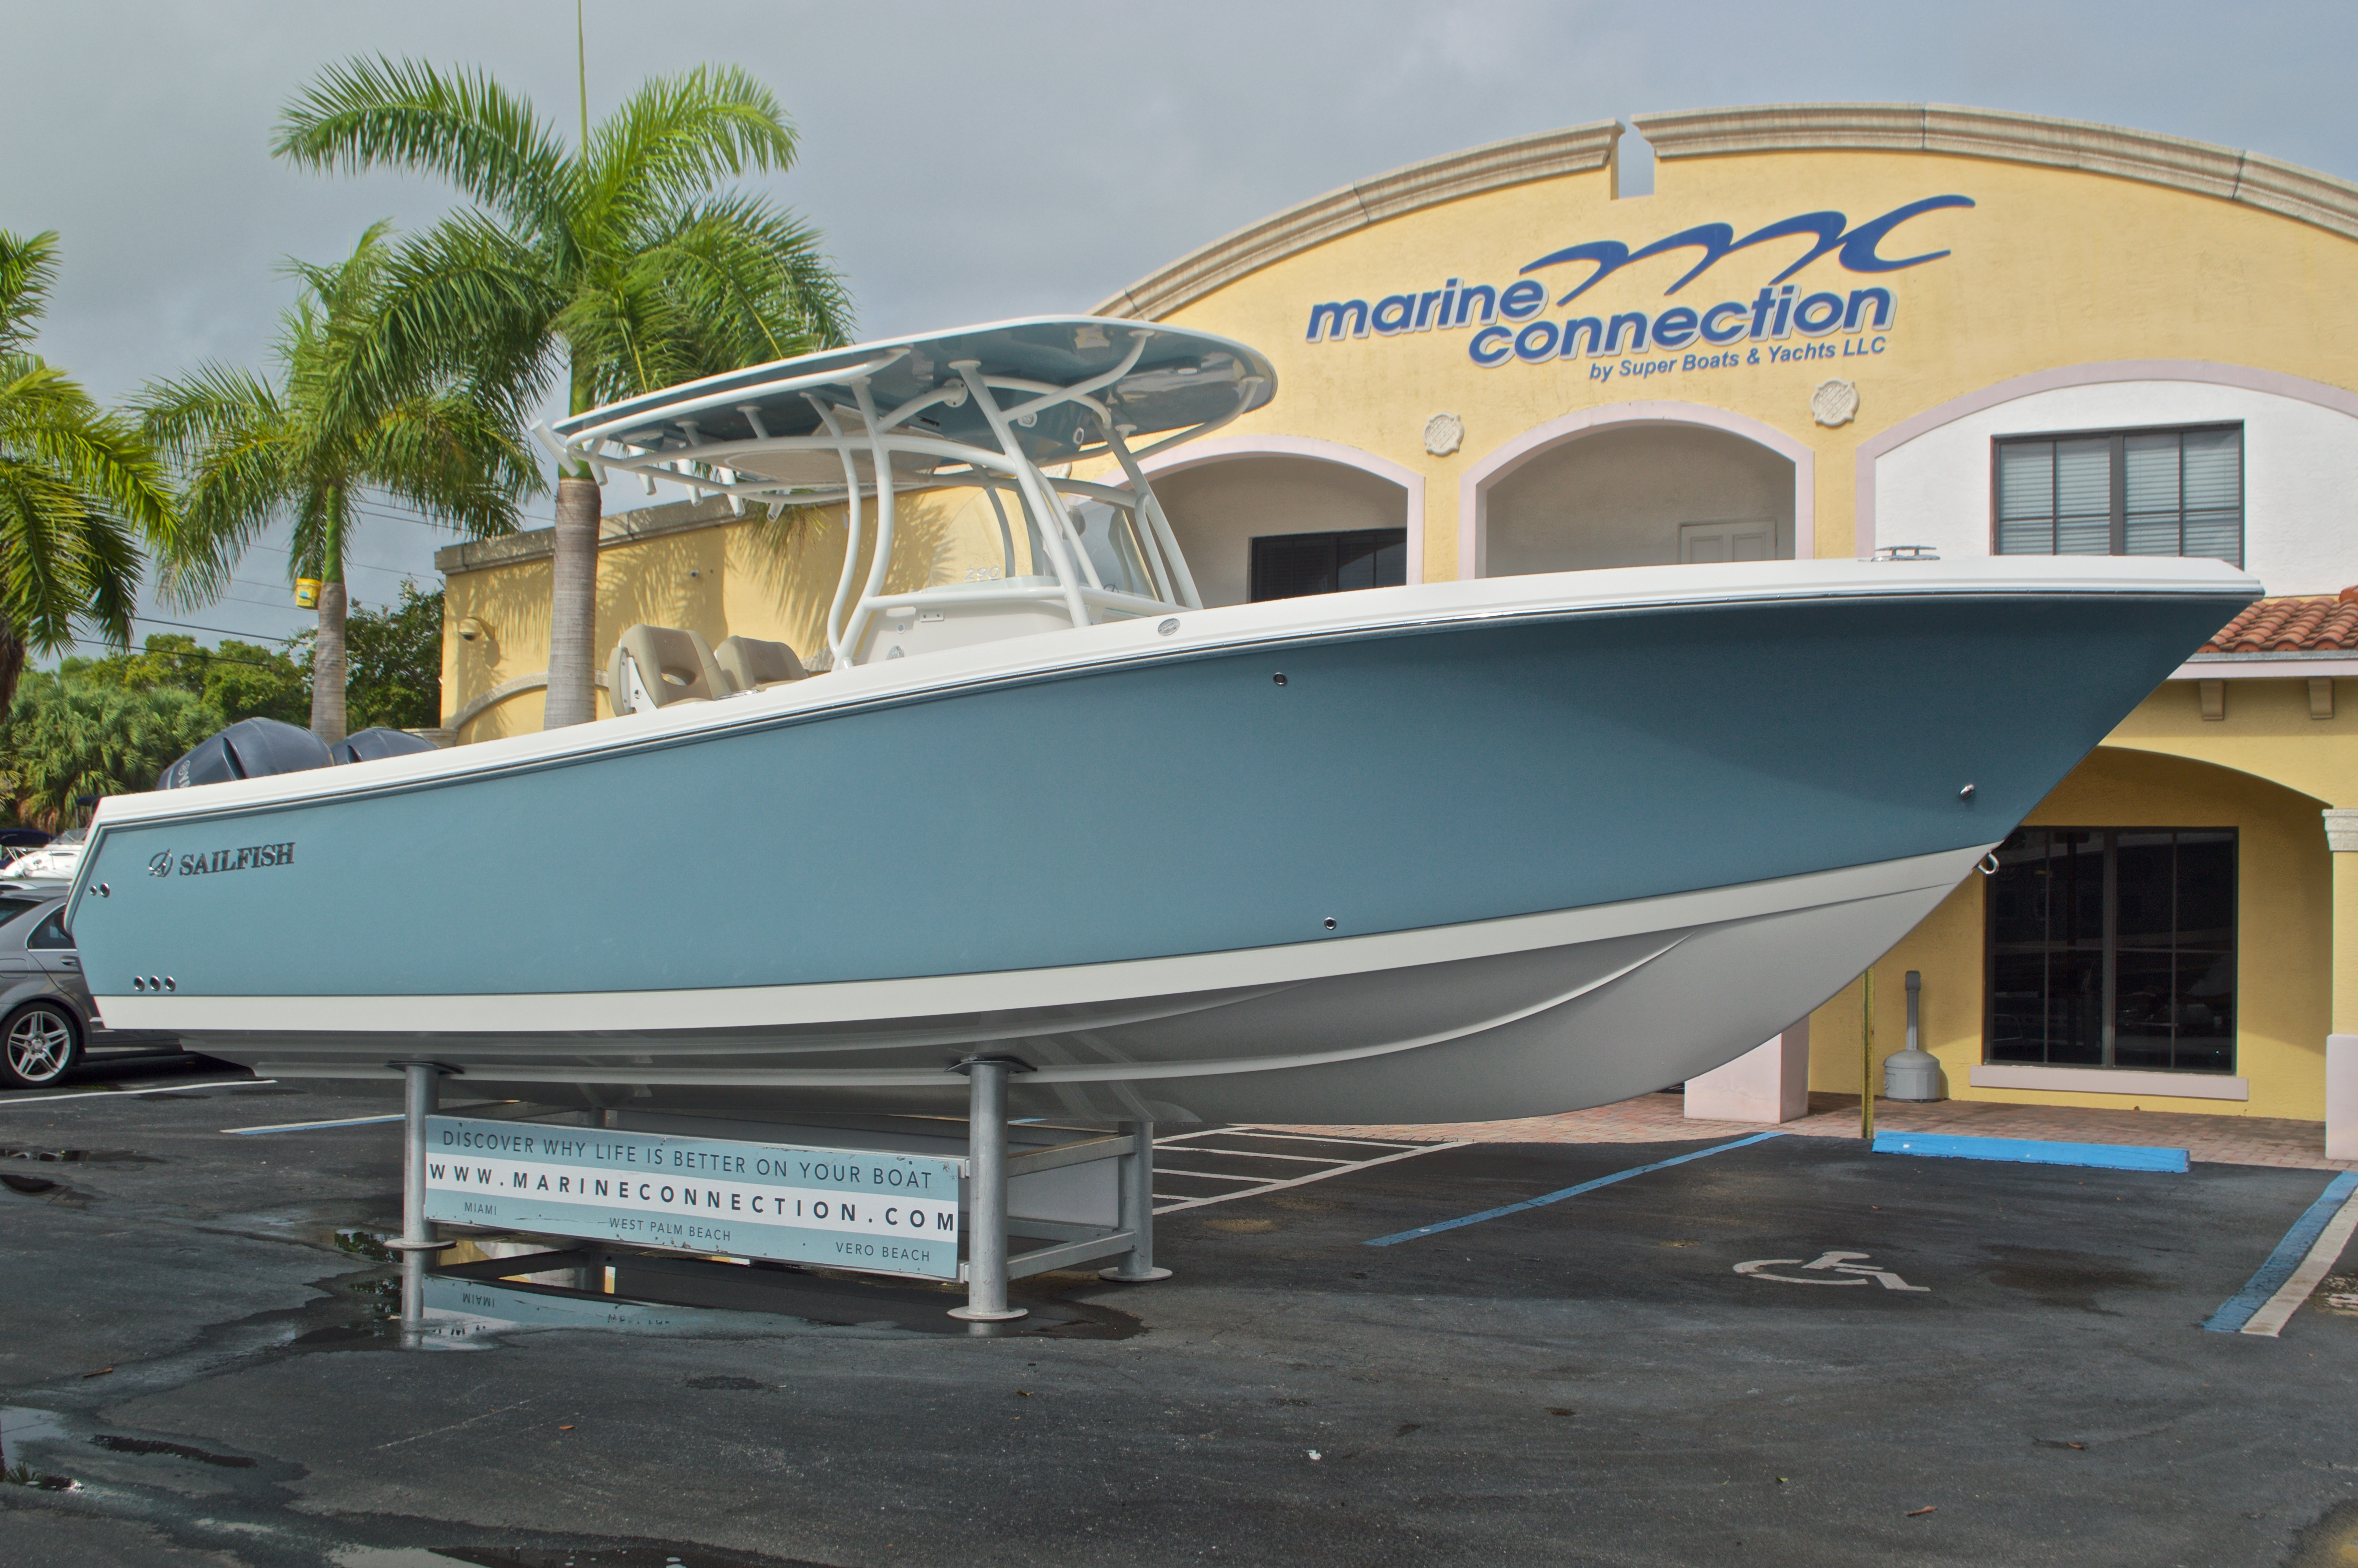 Thumbnail 1 for New 2017 Sailfish 290 CC Center Console boat for sale in Miami, FL